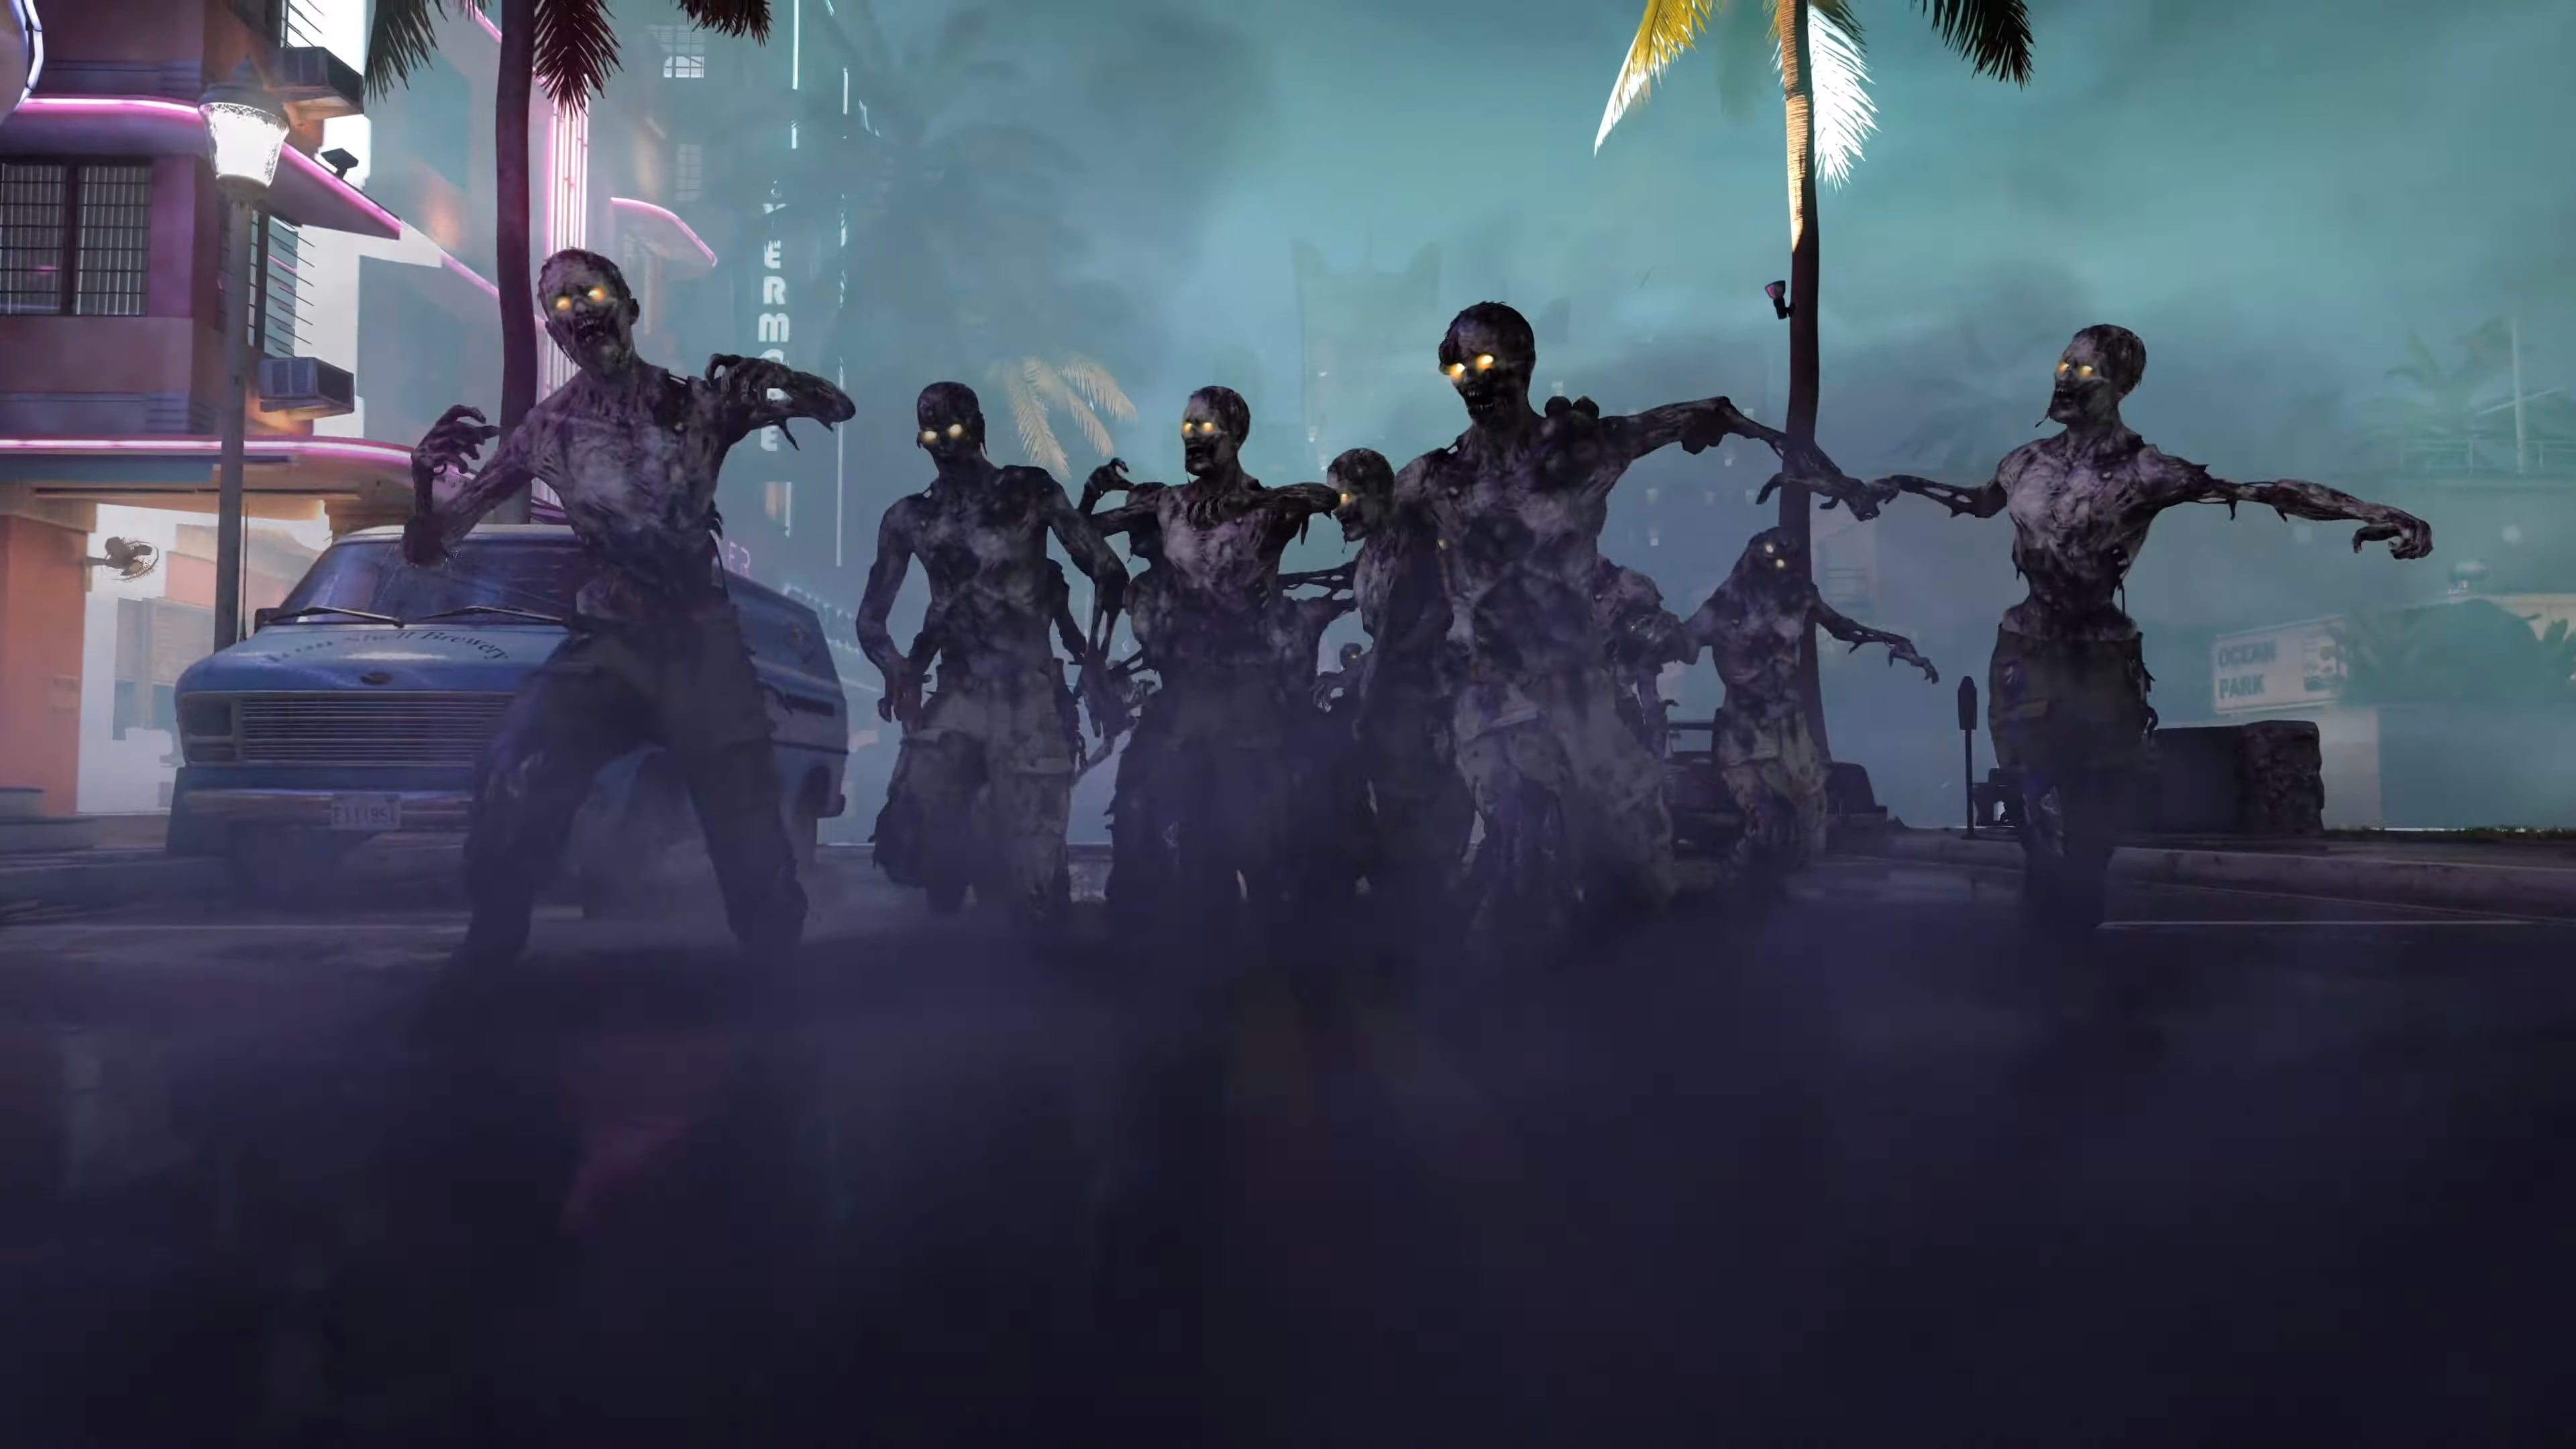 Cod Black Ops Cold War Zombies Onslaught Will Be Playstation Exclusive Until 2021 Shacknews